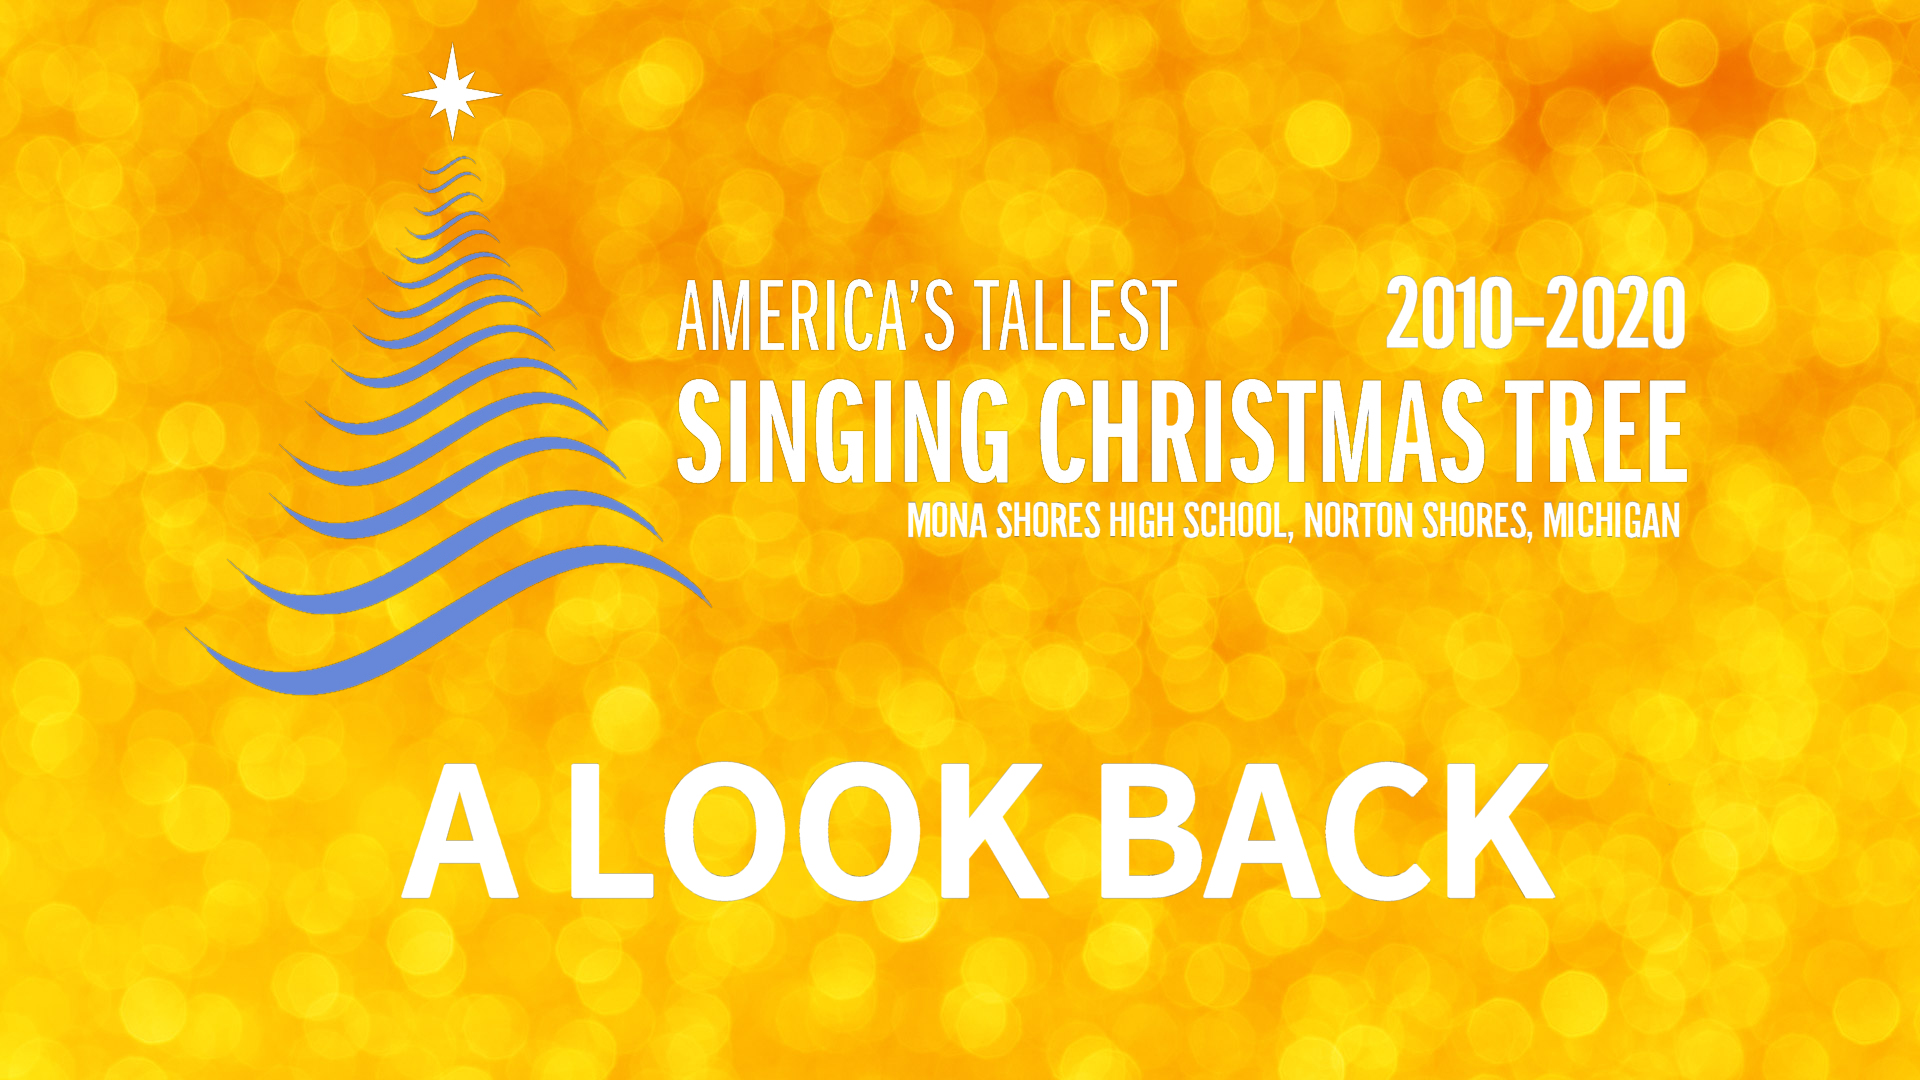 Singing Christmas Tree Muskegon 2021 Mona Shores World S Tallest Singing Christmas Tree 2020 A Look Back Muskegonchannel Com